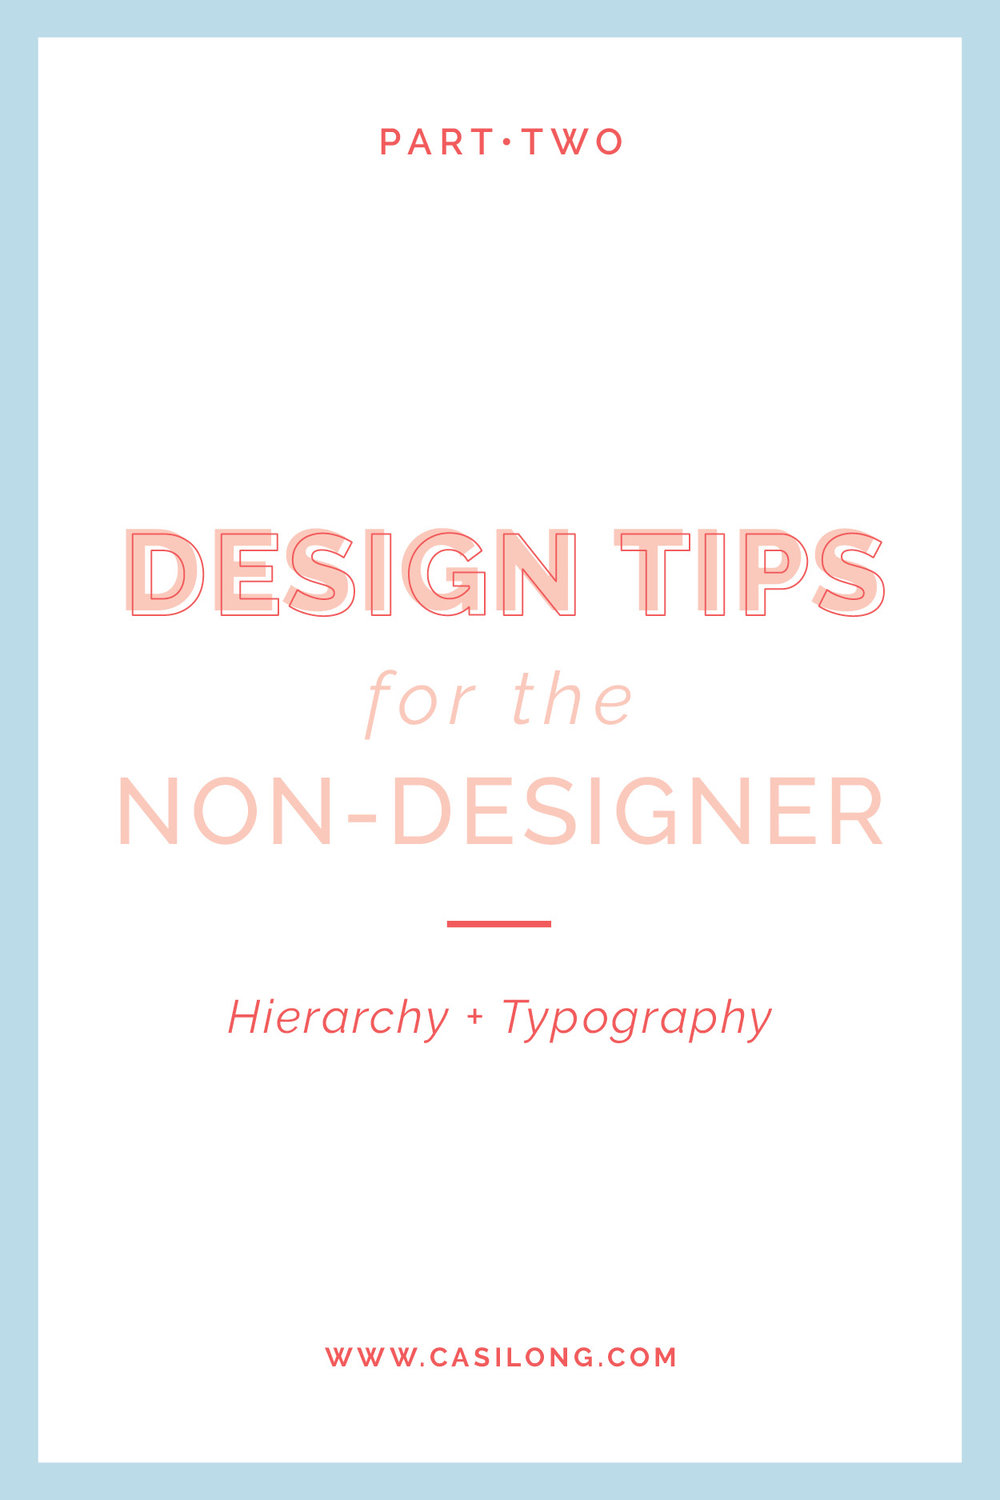 Design Tips for the Non-Designer Part Two | Hierarchy + Typography | casilong.com/blog | #casilongdesign #fearlesspursuit